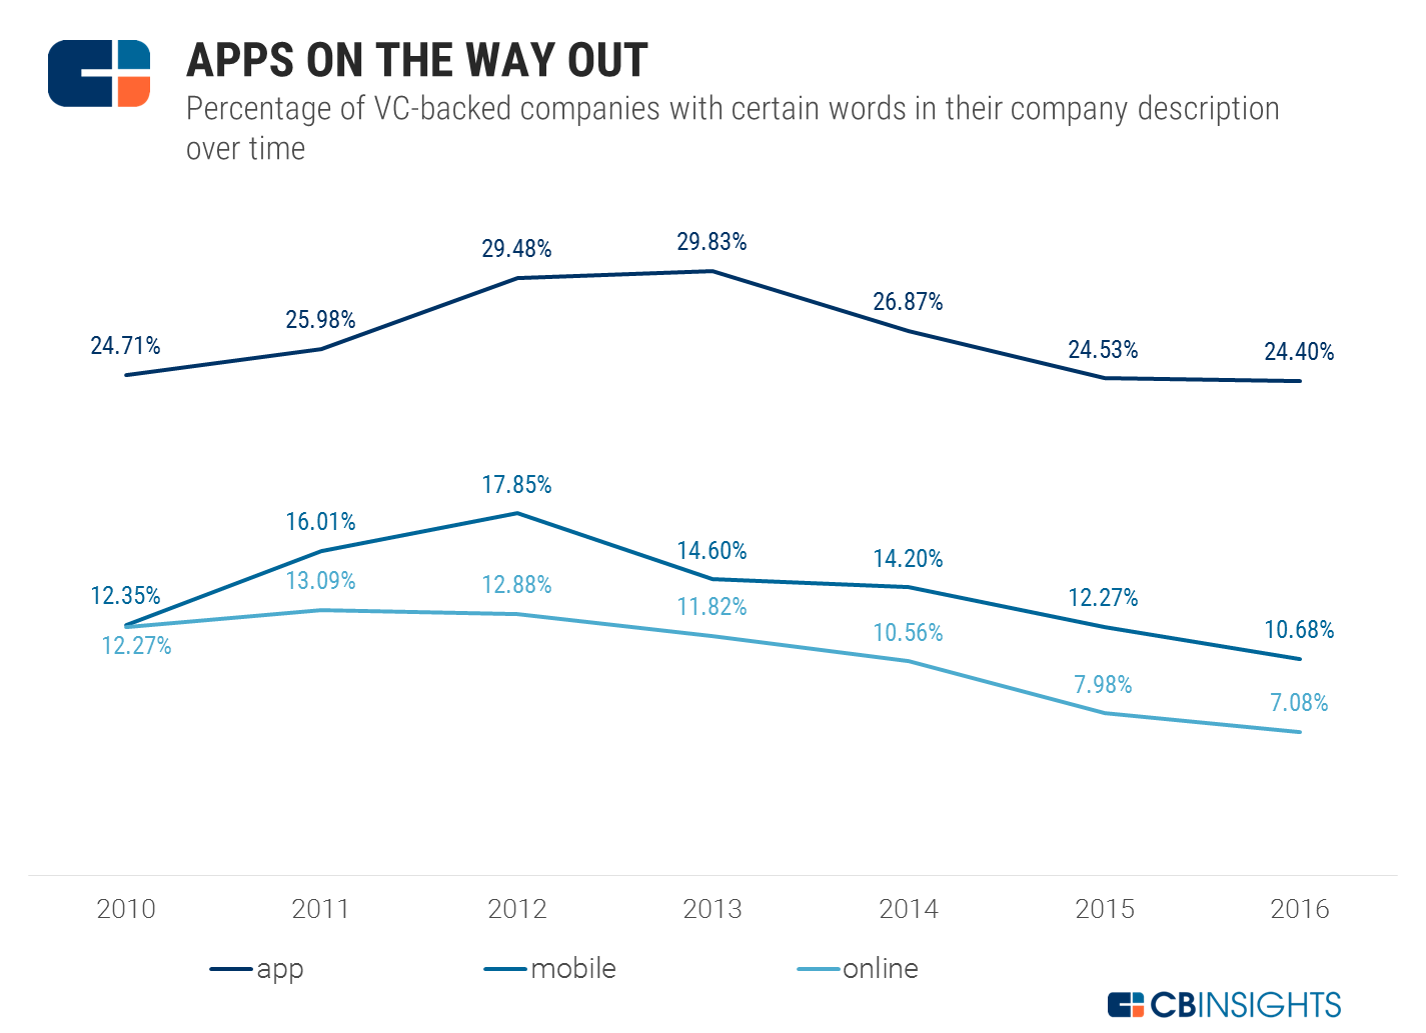 apps_onthe_way_out